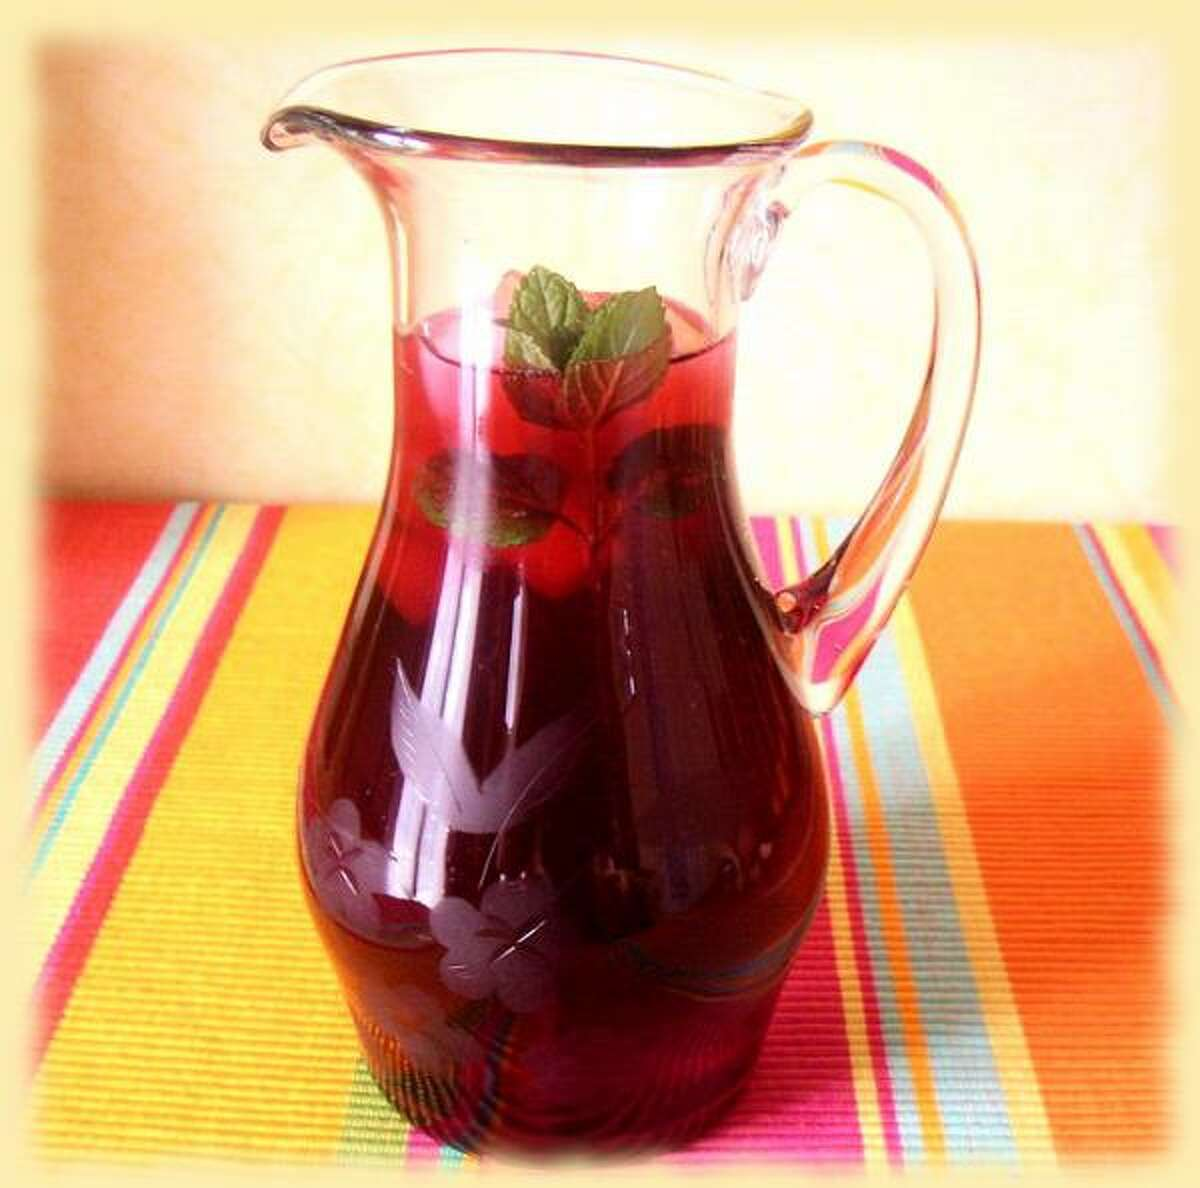 In Senegal, bissap -- chilled hibiscus tea -- is considered the national drink, although it's widely consumed in Mali, Burkina Faso and other African nations.